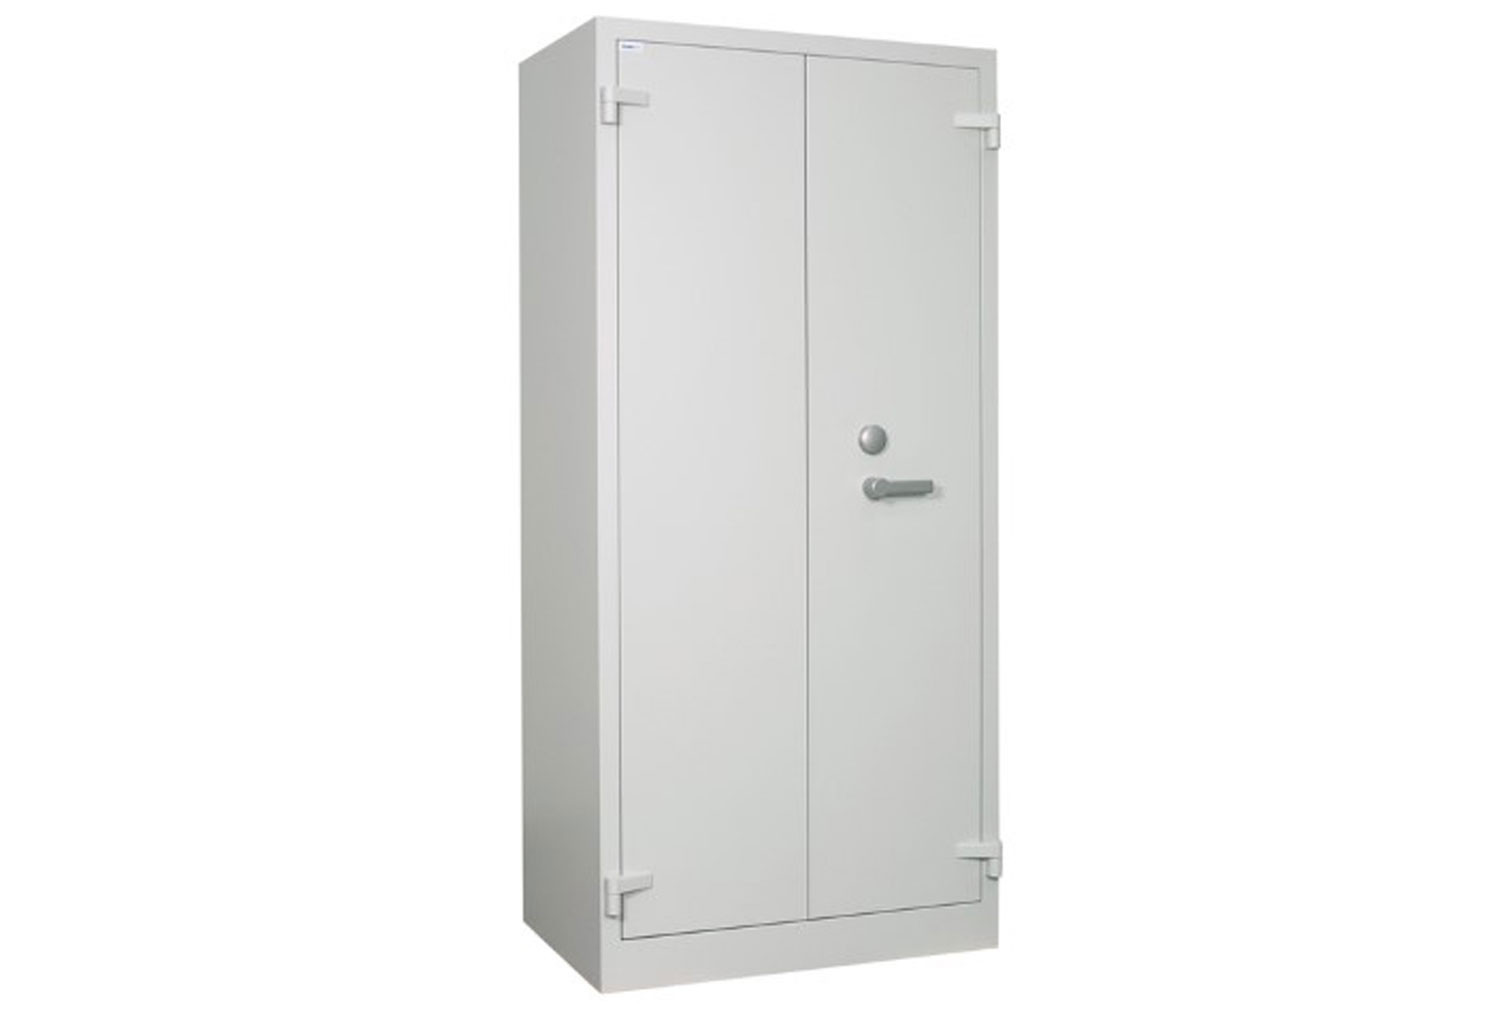 Chubbsafes Archive 640 Fire Resistant Cabinet With Key Lock (640ltrs)